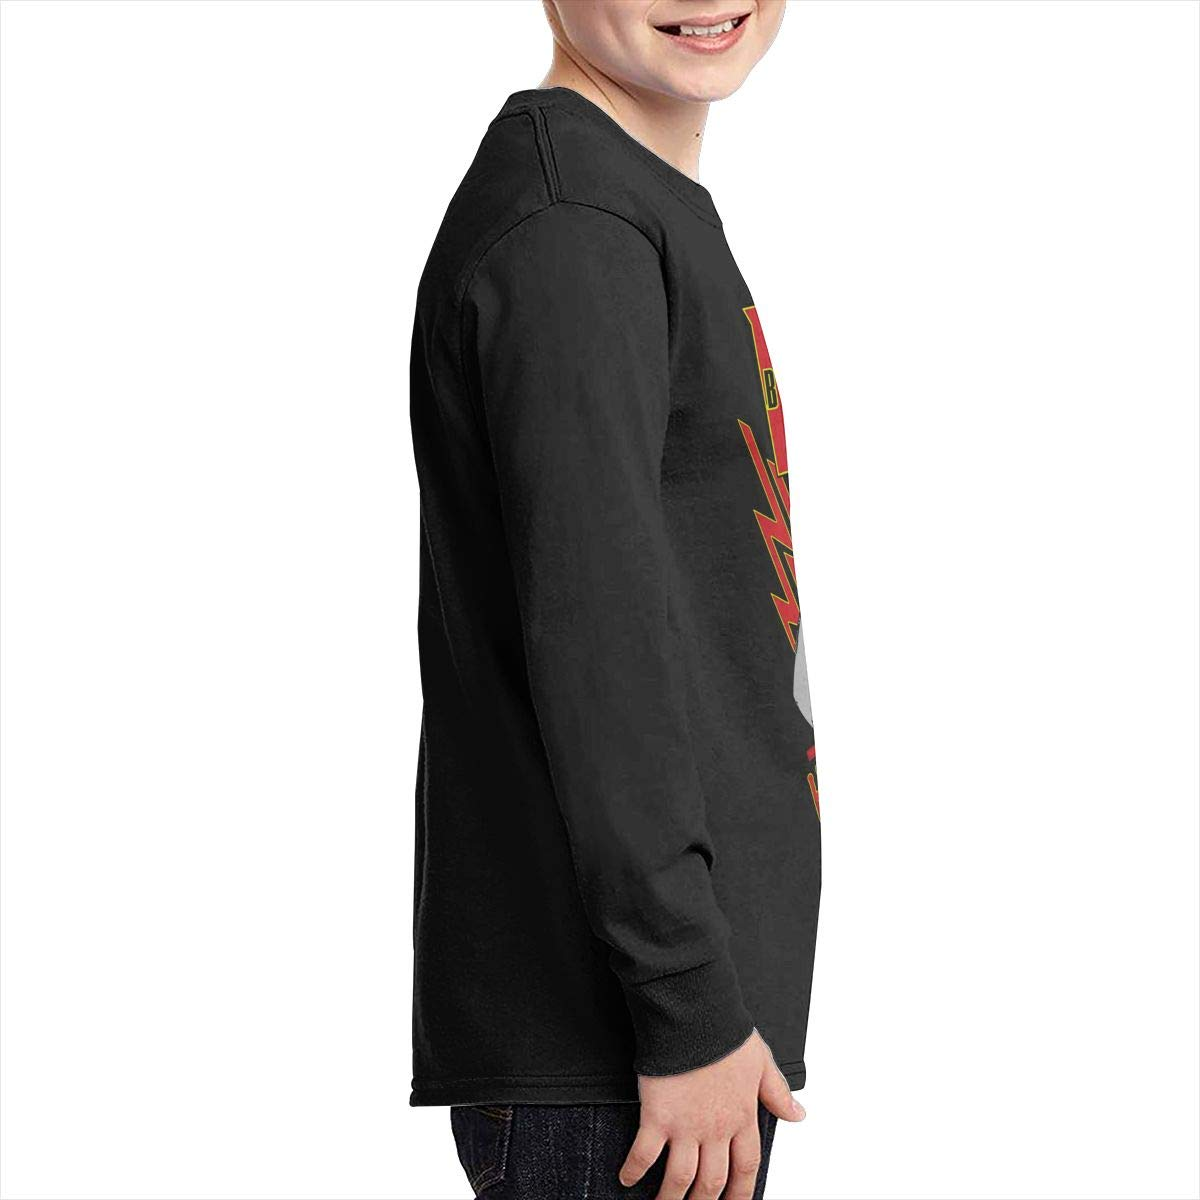 Youth Billy Hot in The City Idol Long Sleeves Shirt Boys Girls